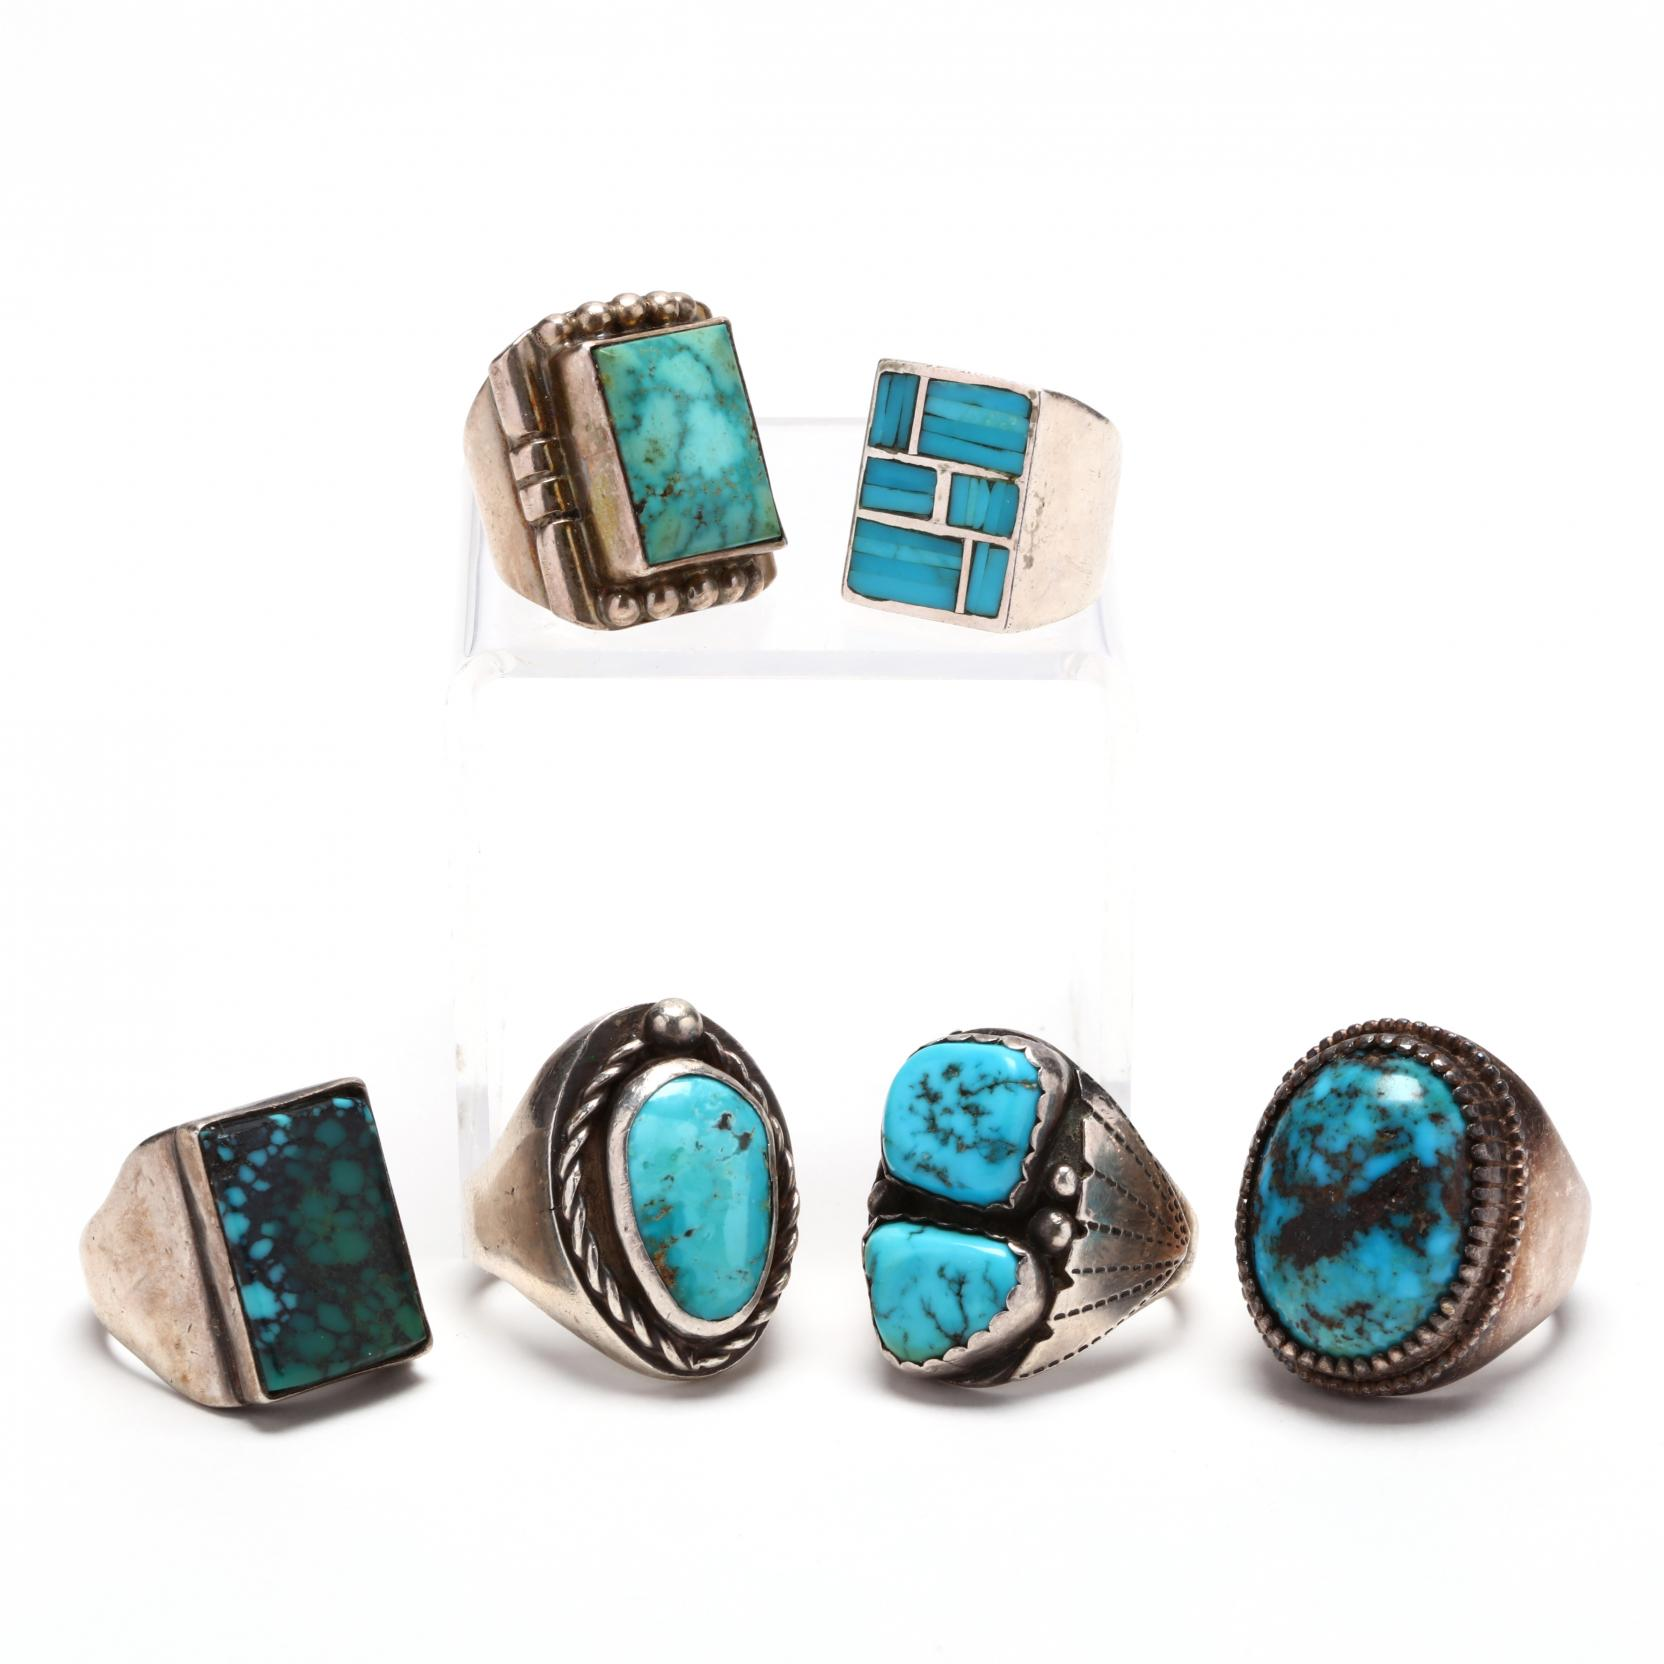 a-collection-of-six-turquoise-and-silver-rings